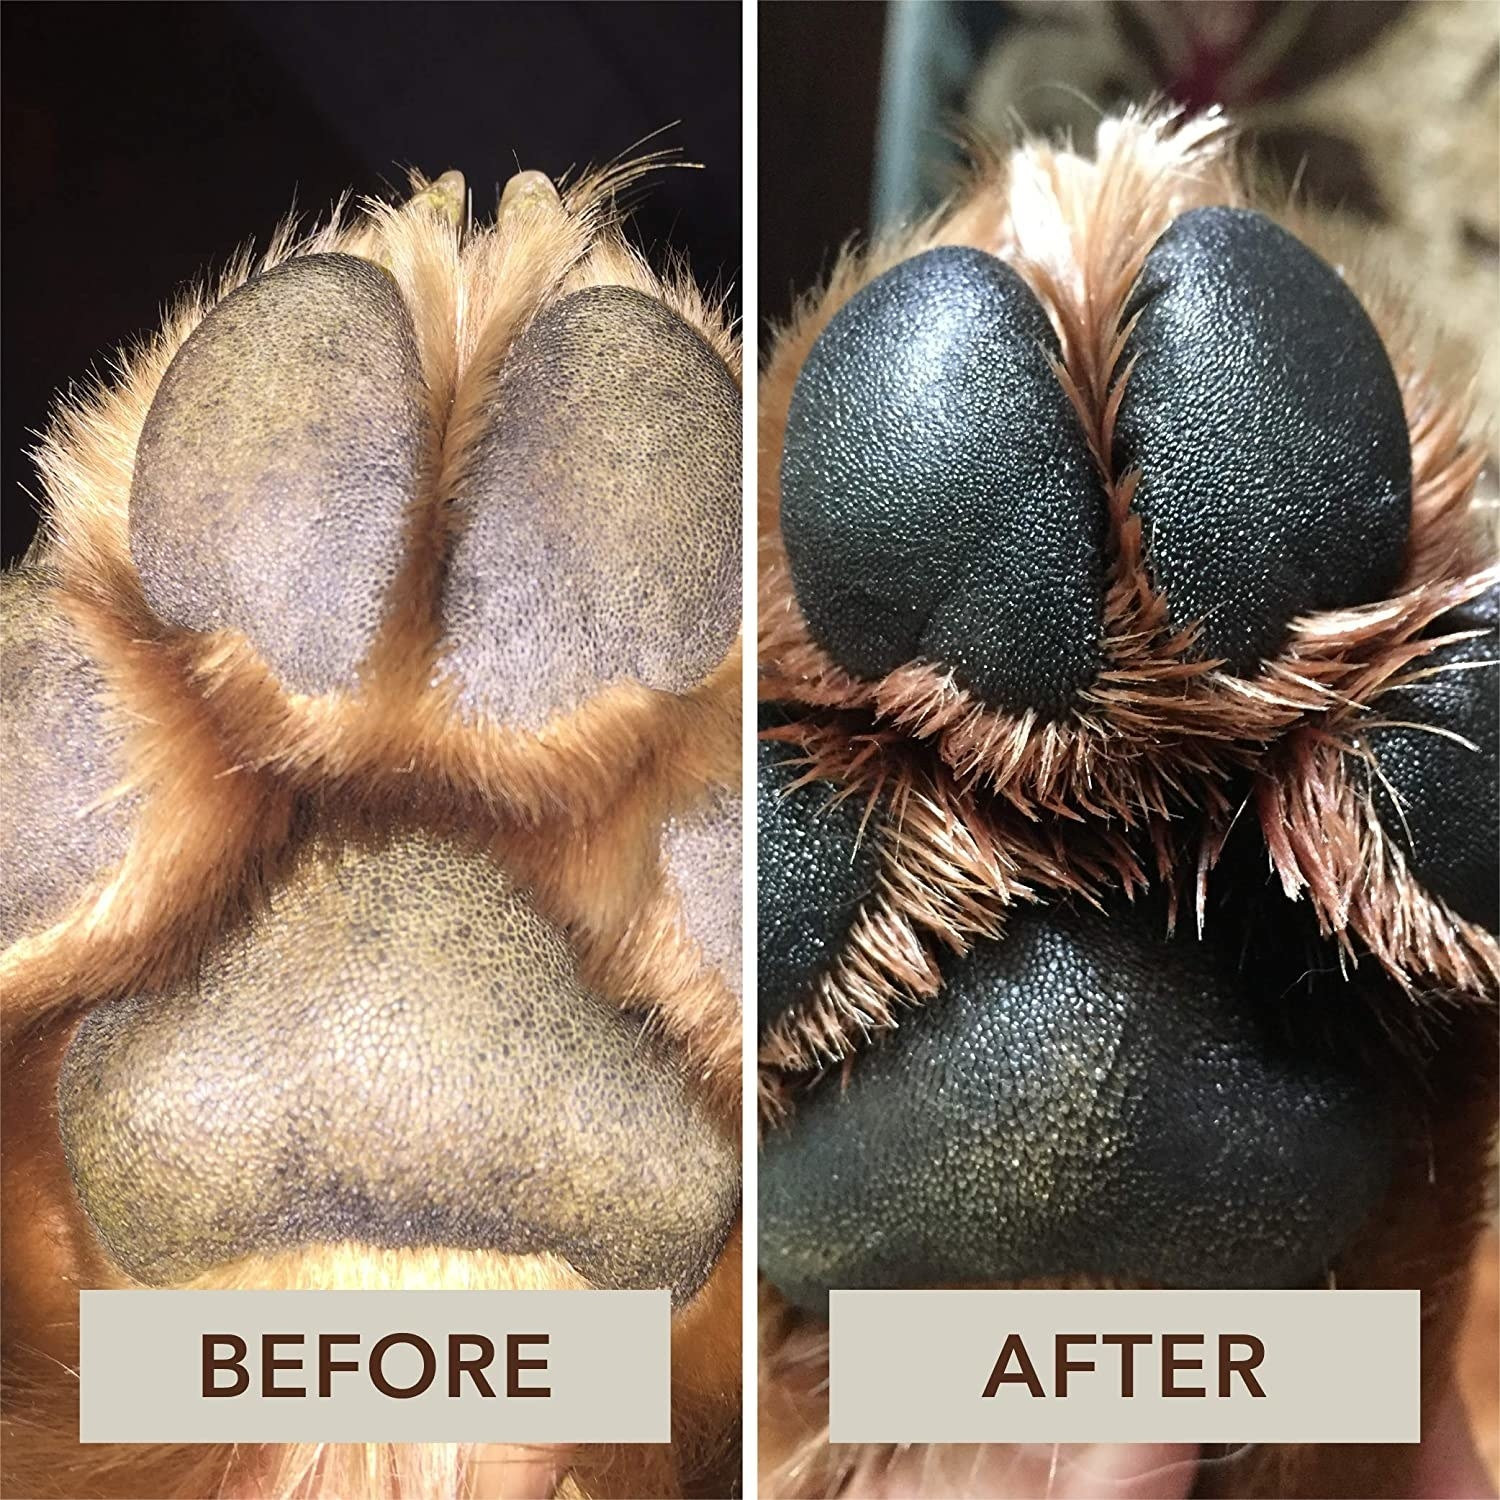 A split photo of a dog's paw before and after using the cream, showing a much darker and healthier paw